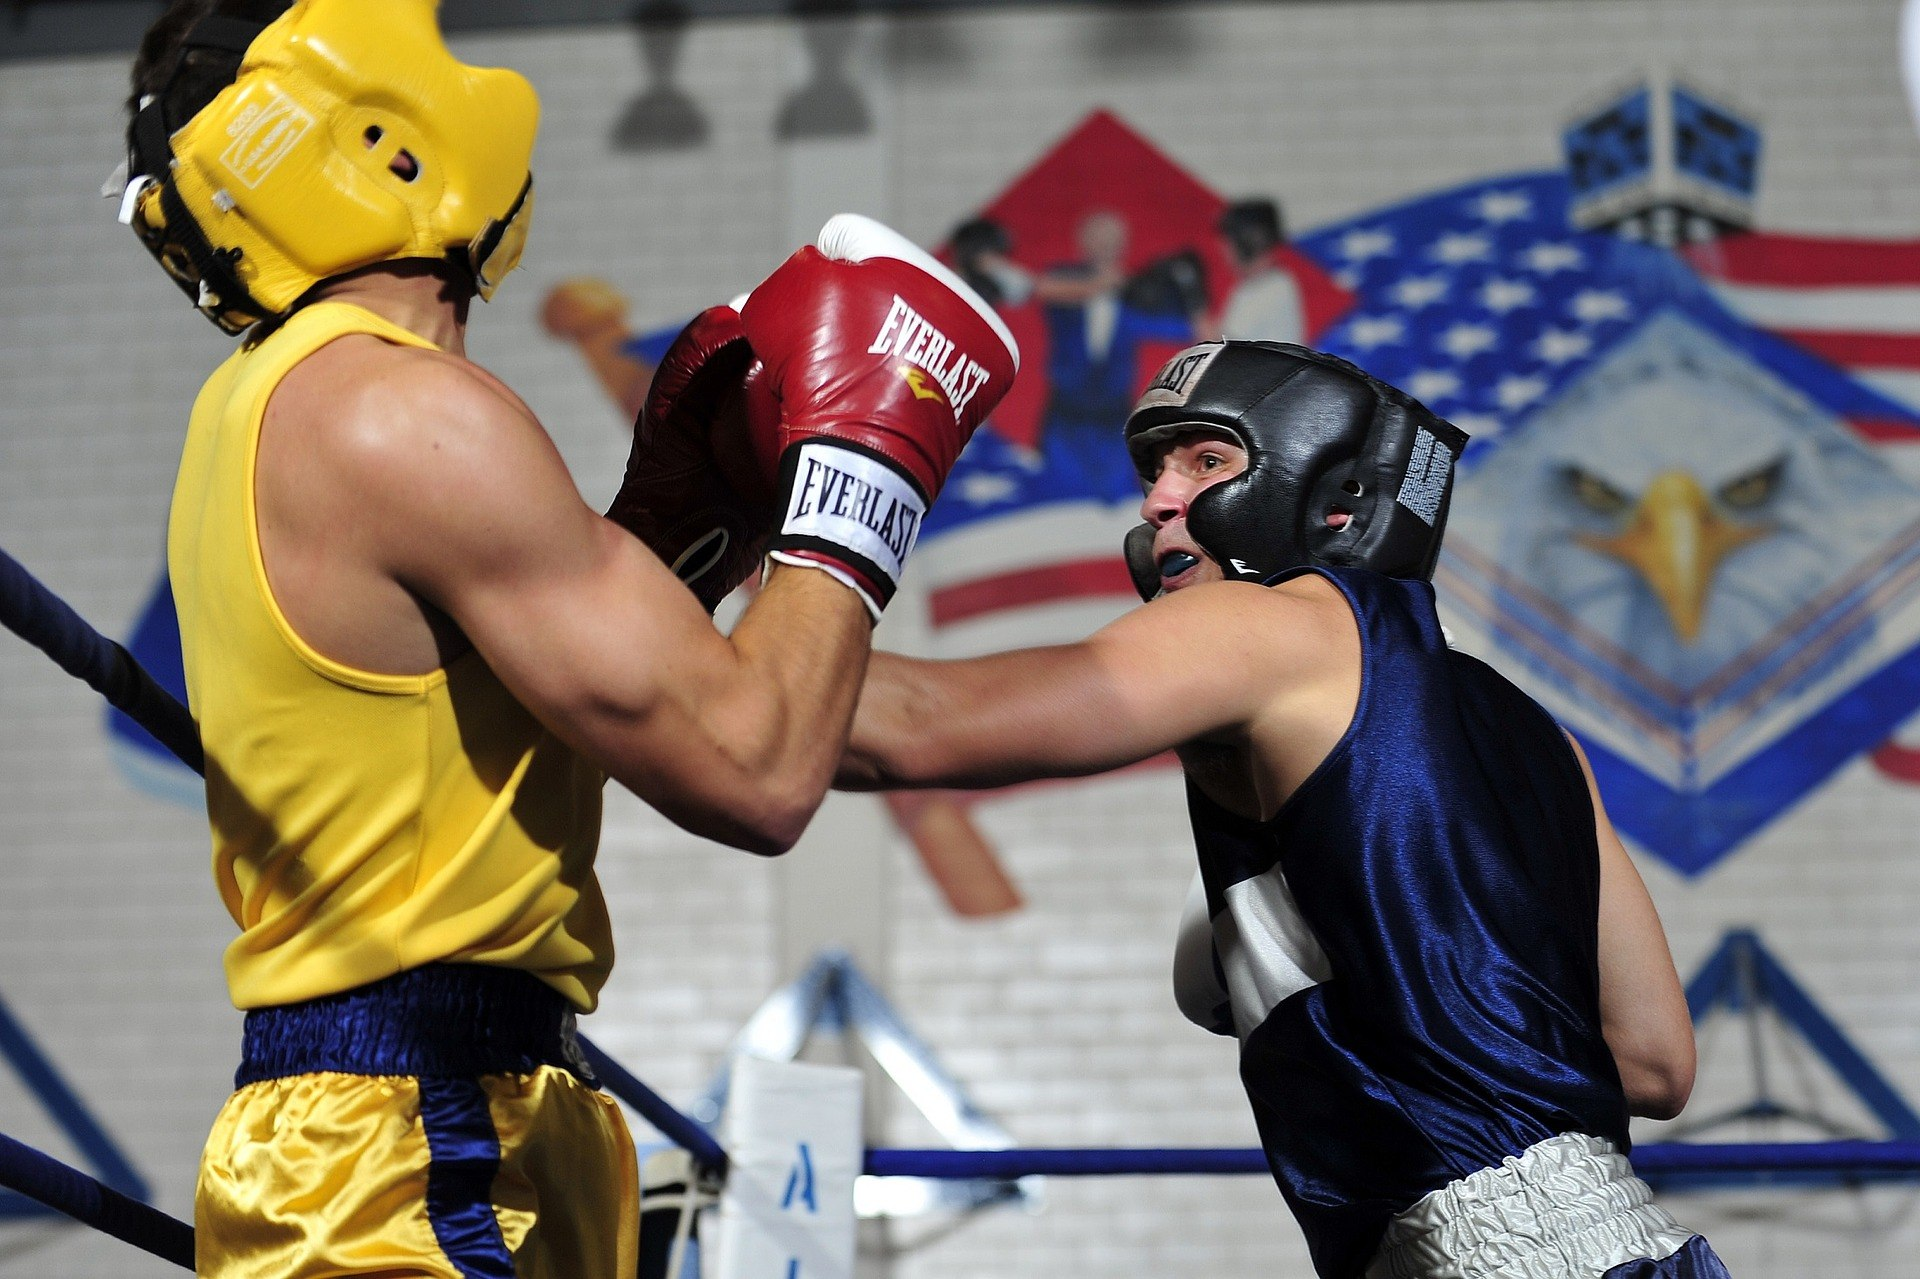 boxing with braces